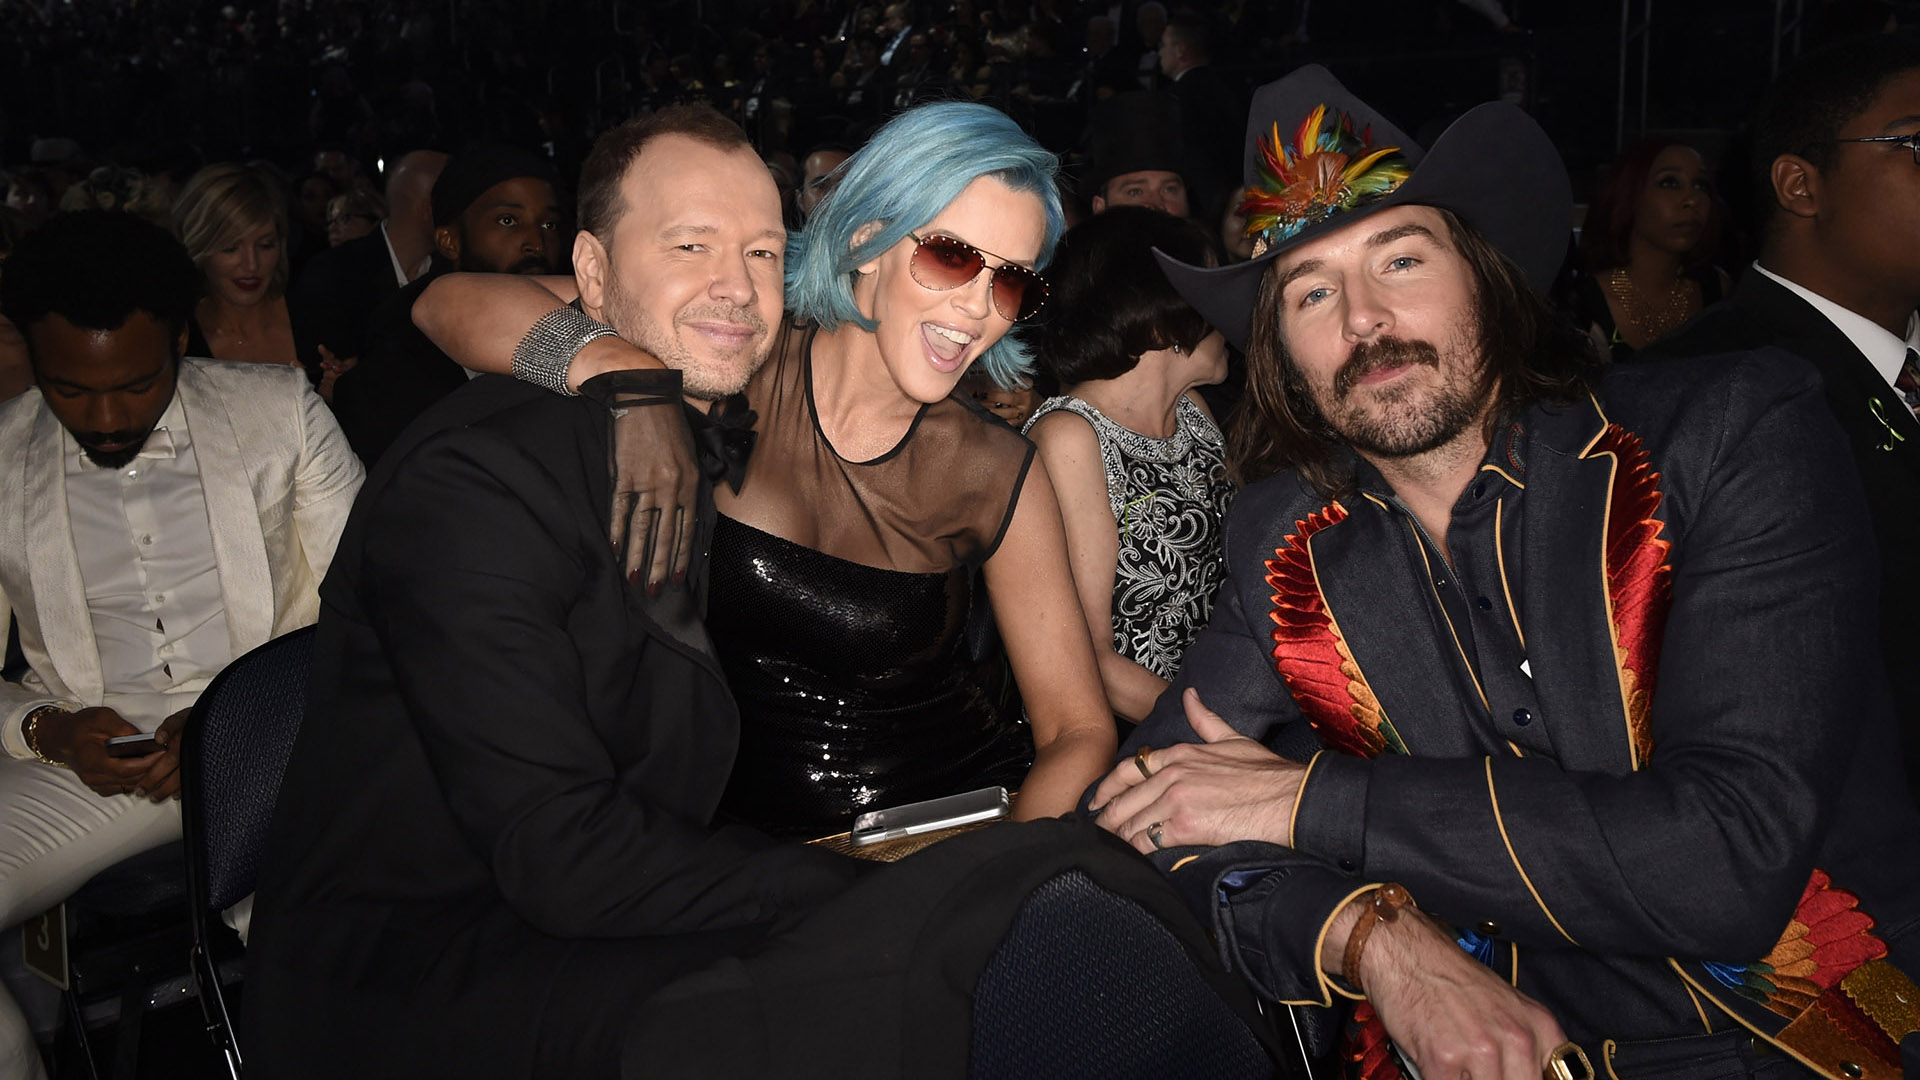 Blue Bloods star Donnie Wahlberg and his wife Jenny McCarthy strike a pose with Mark Wystrach from Midland.